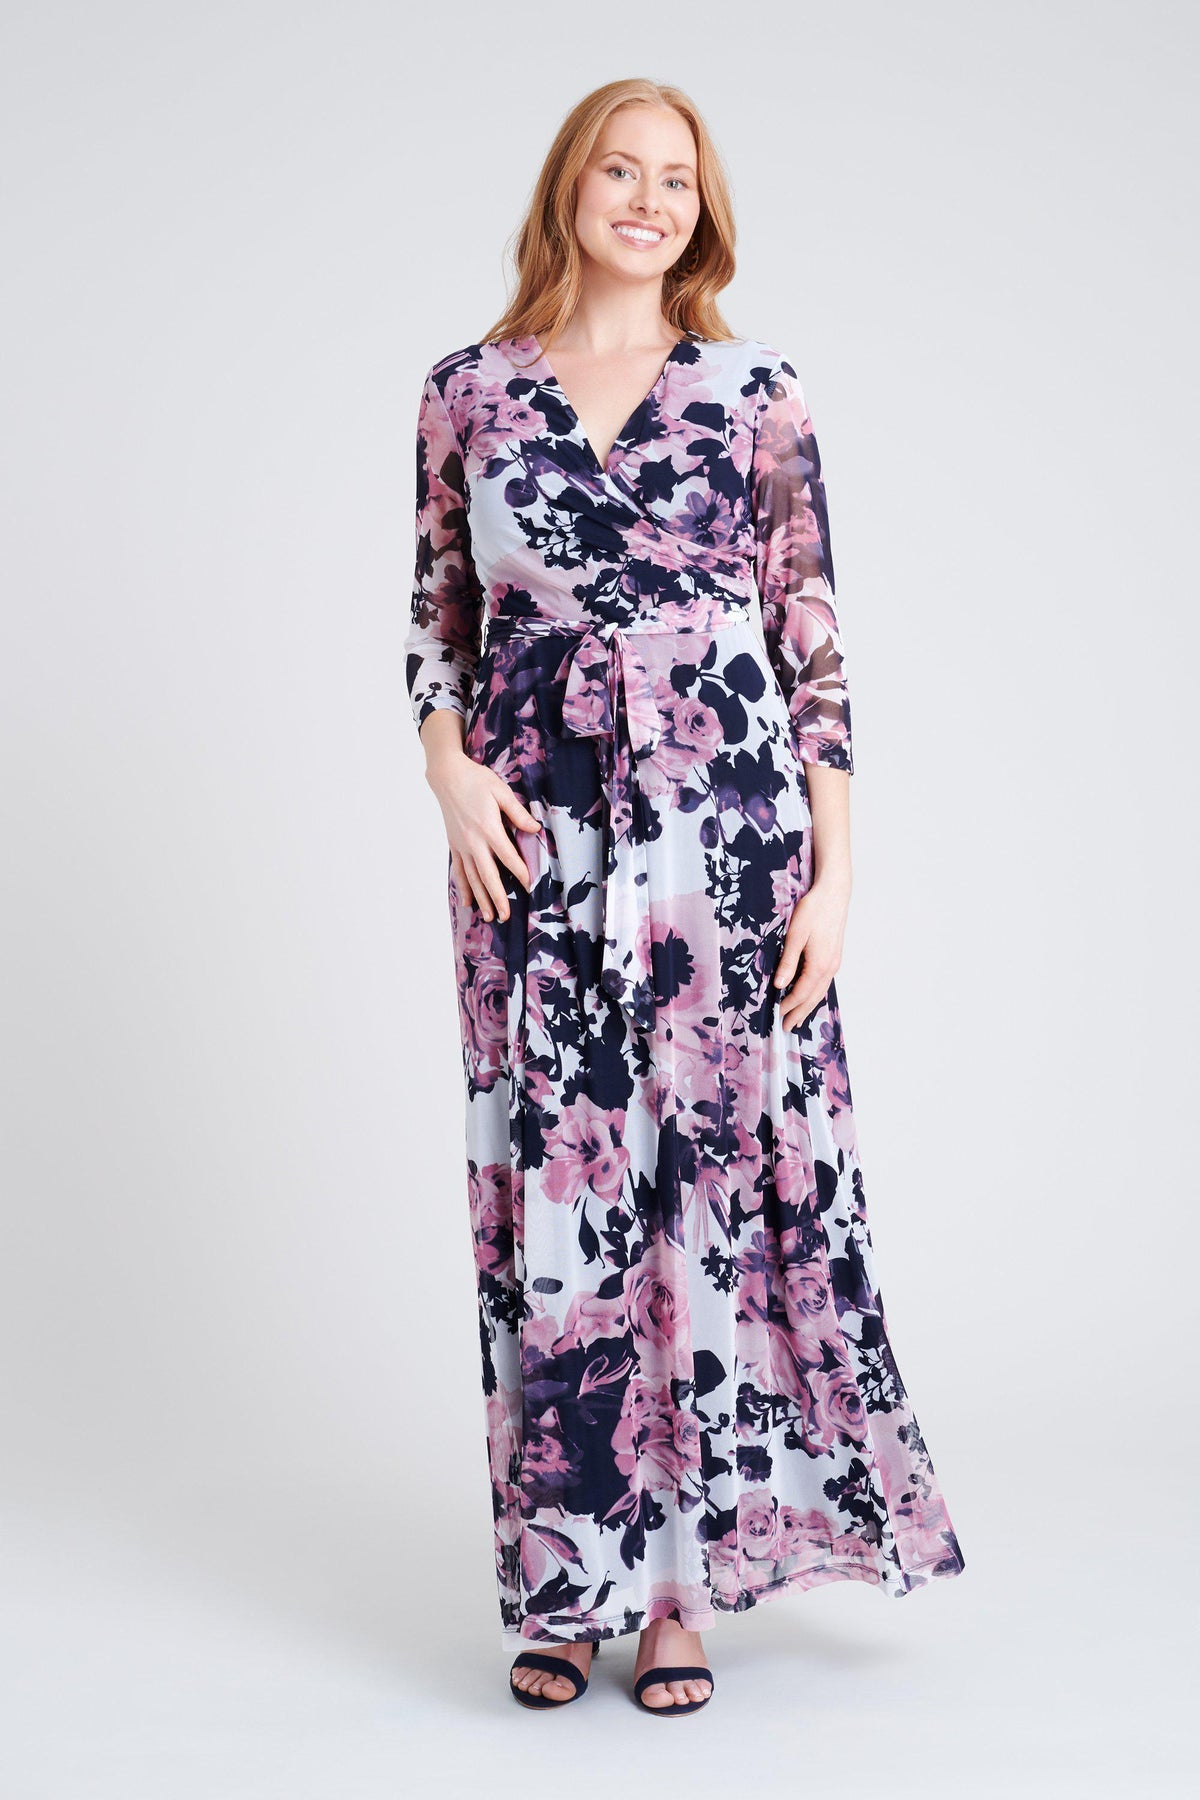 woman-wearing-connected-apparel-Krista Floral Print Wrap Maxi Dress-posing-on-plain-background